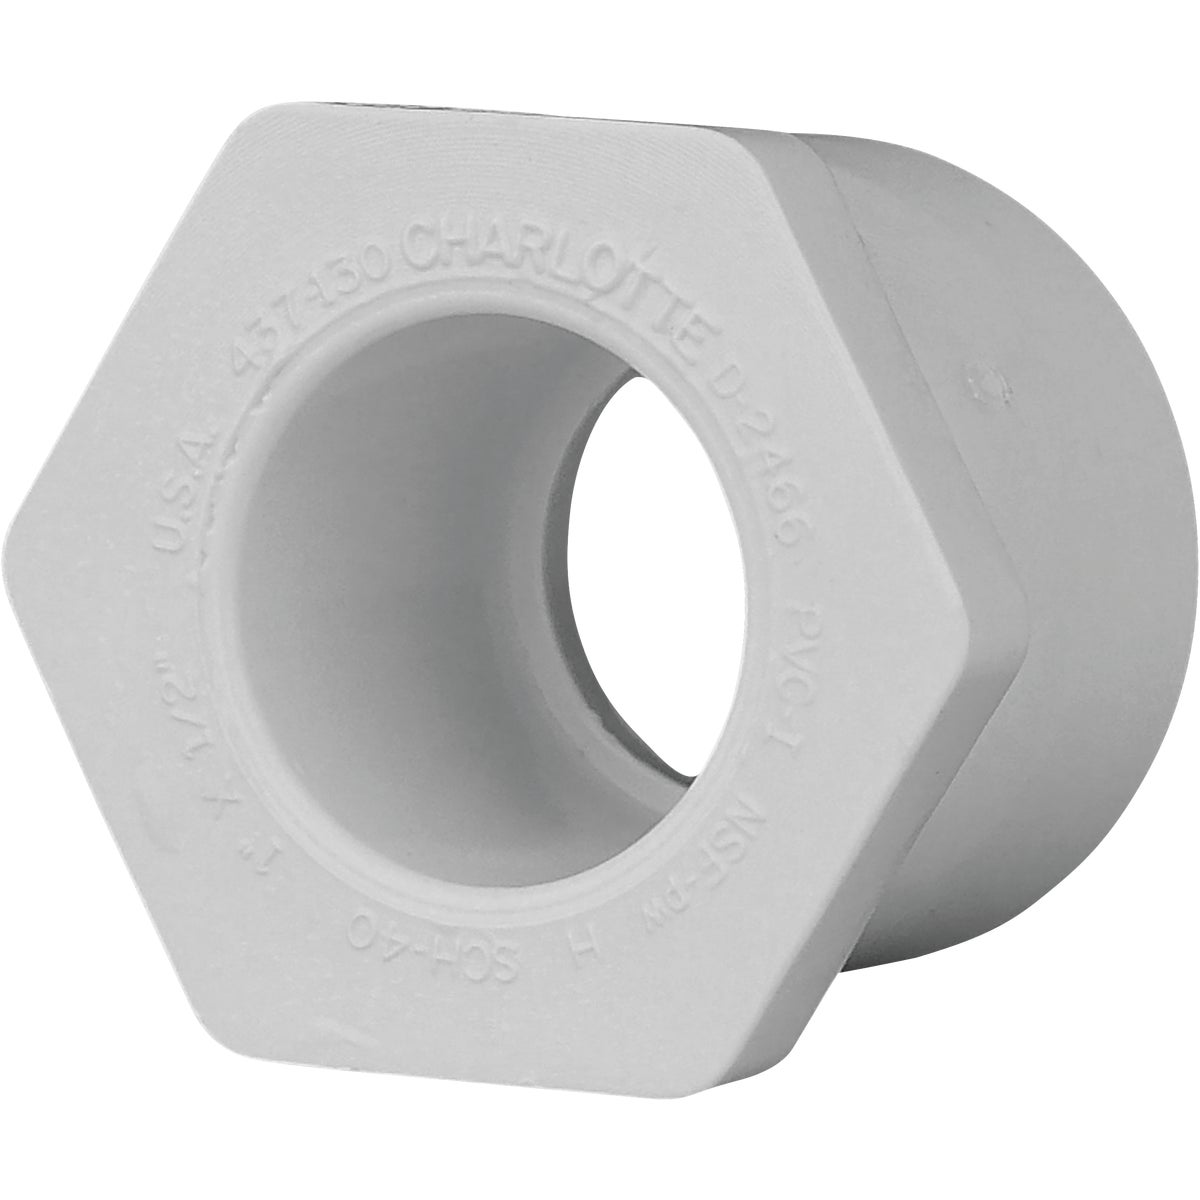 1X1/2 PVC SPXS BUSHING - 30215 by Genova Inc